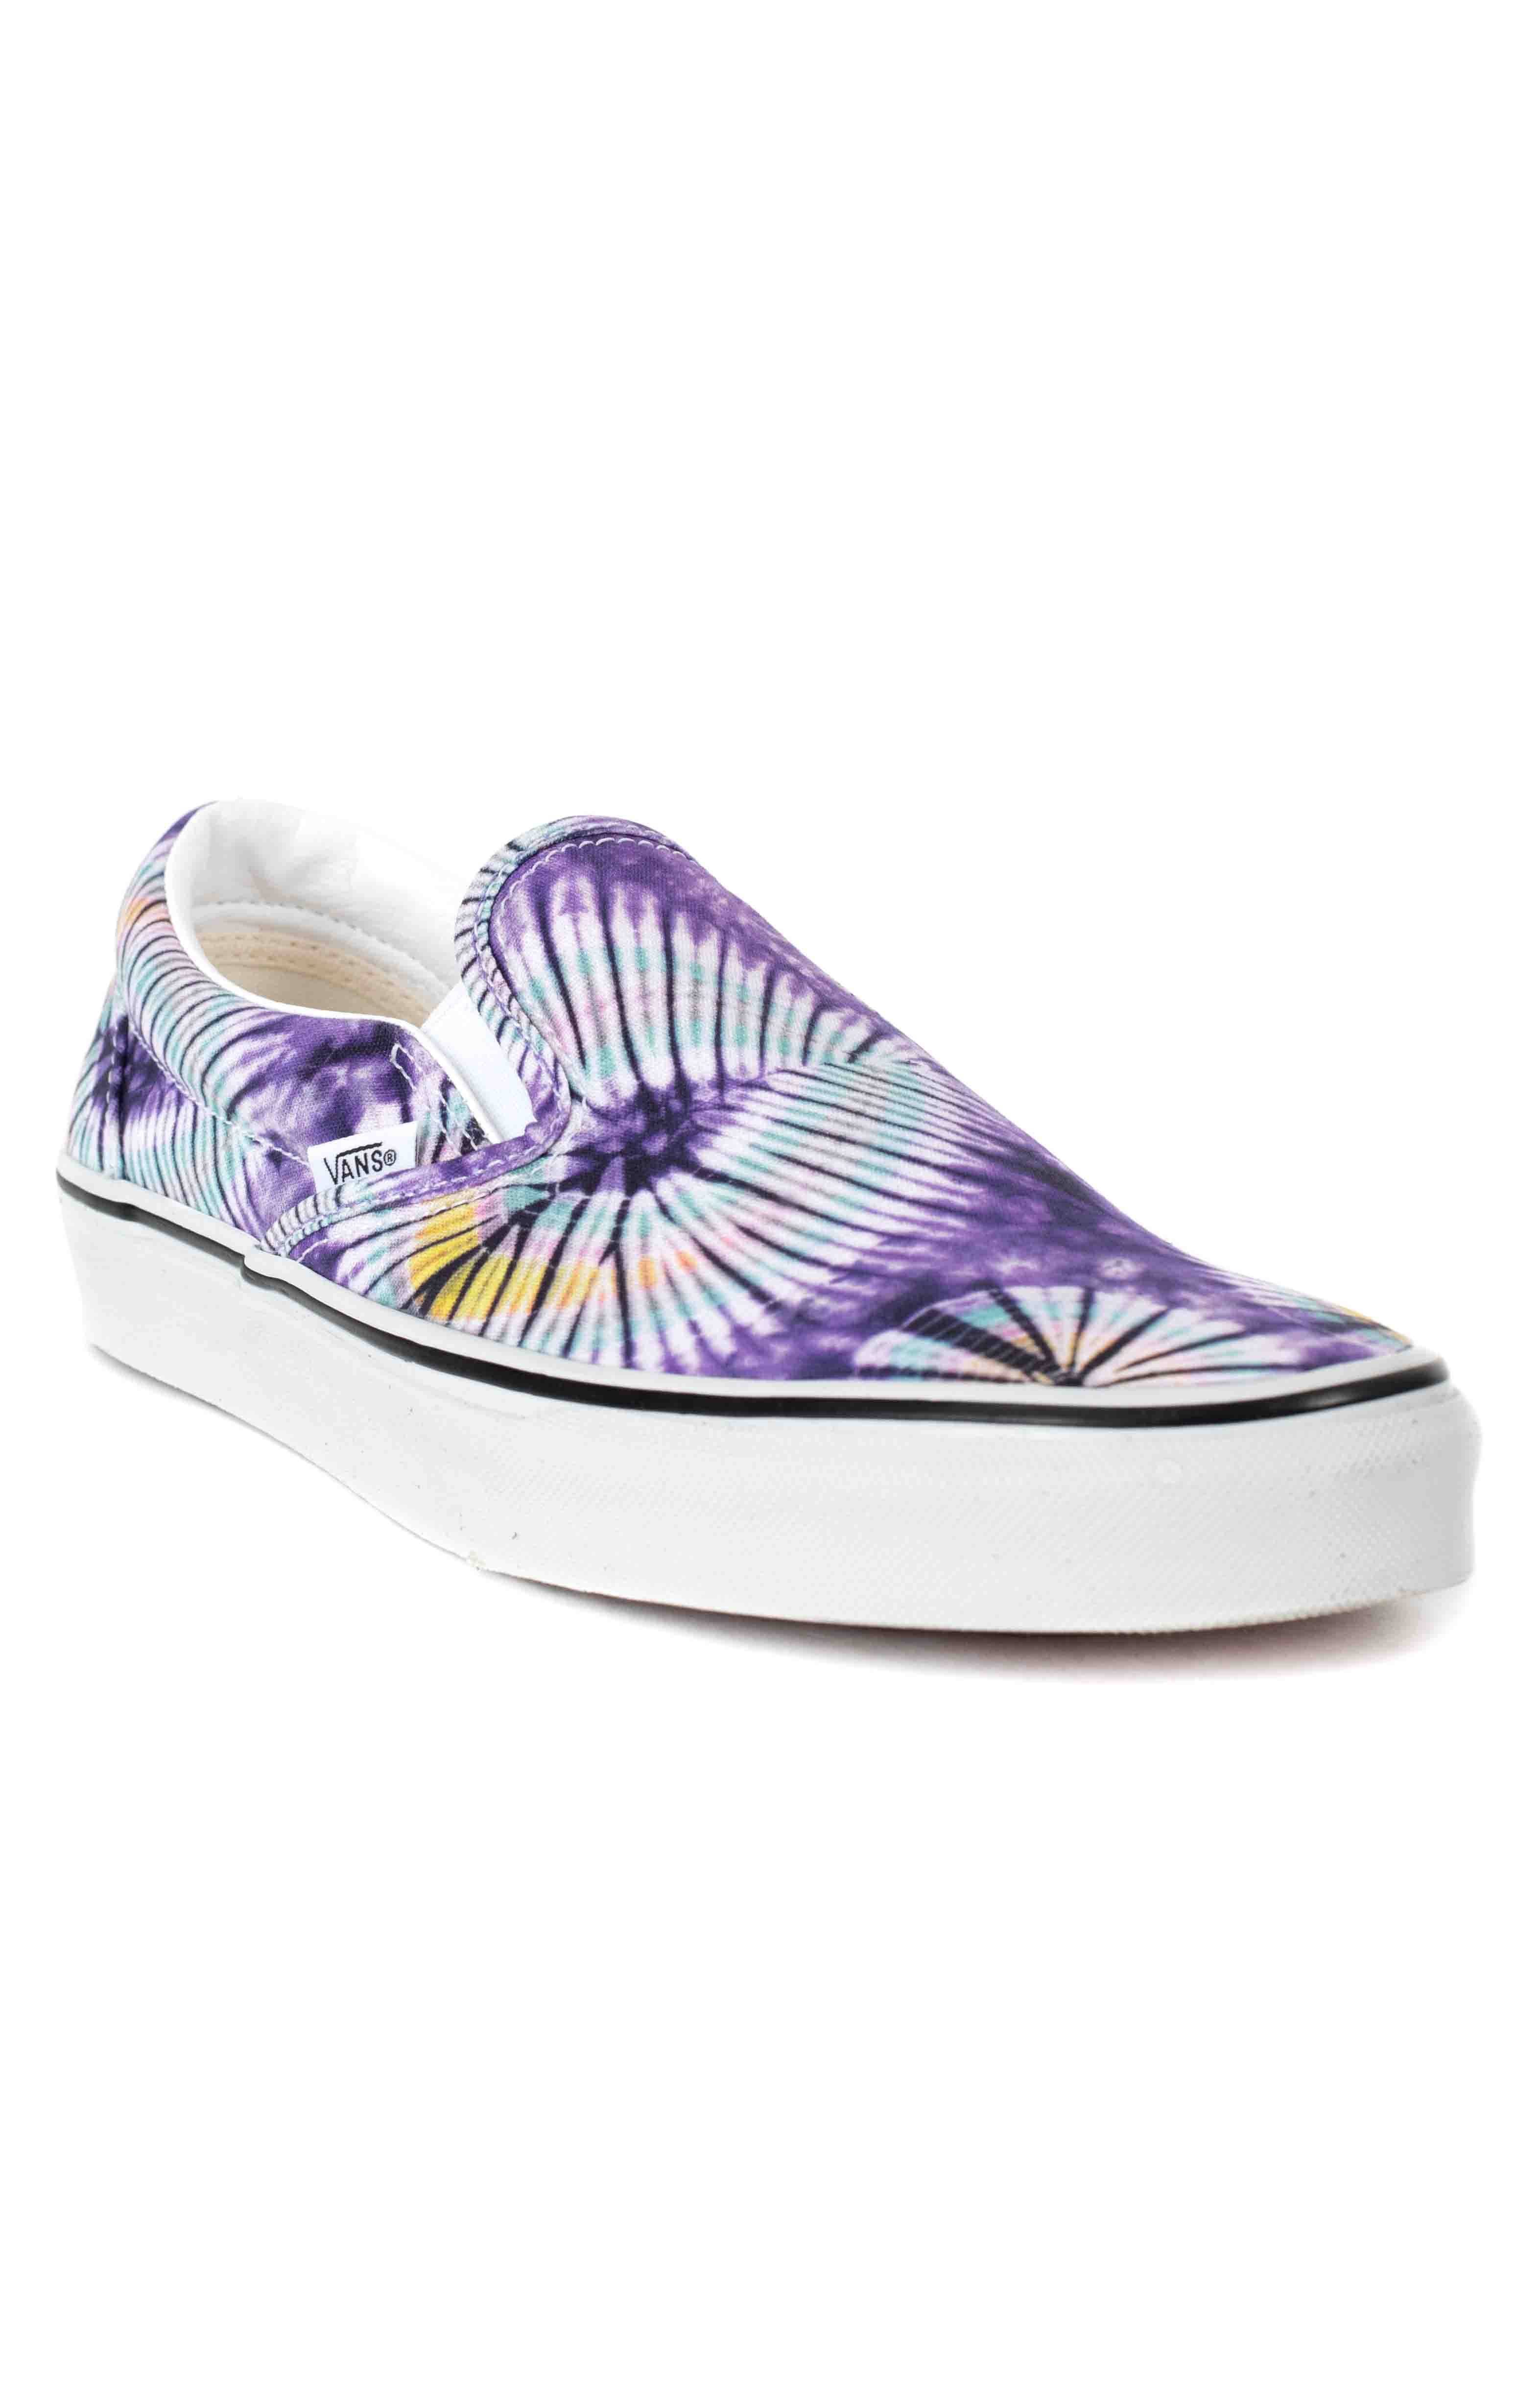 (AO86G6) New Age Classic Slip-On Shoes - Purple Tie-Dye  3